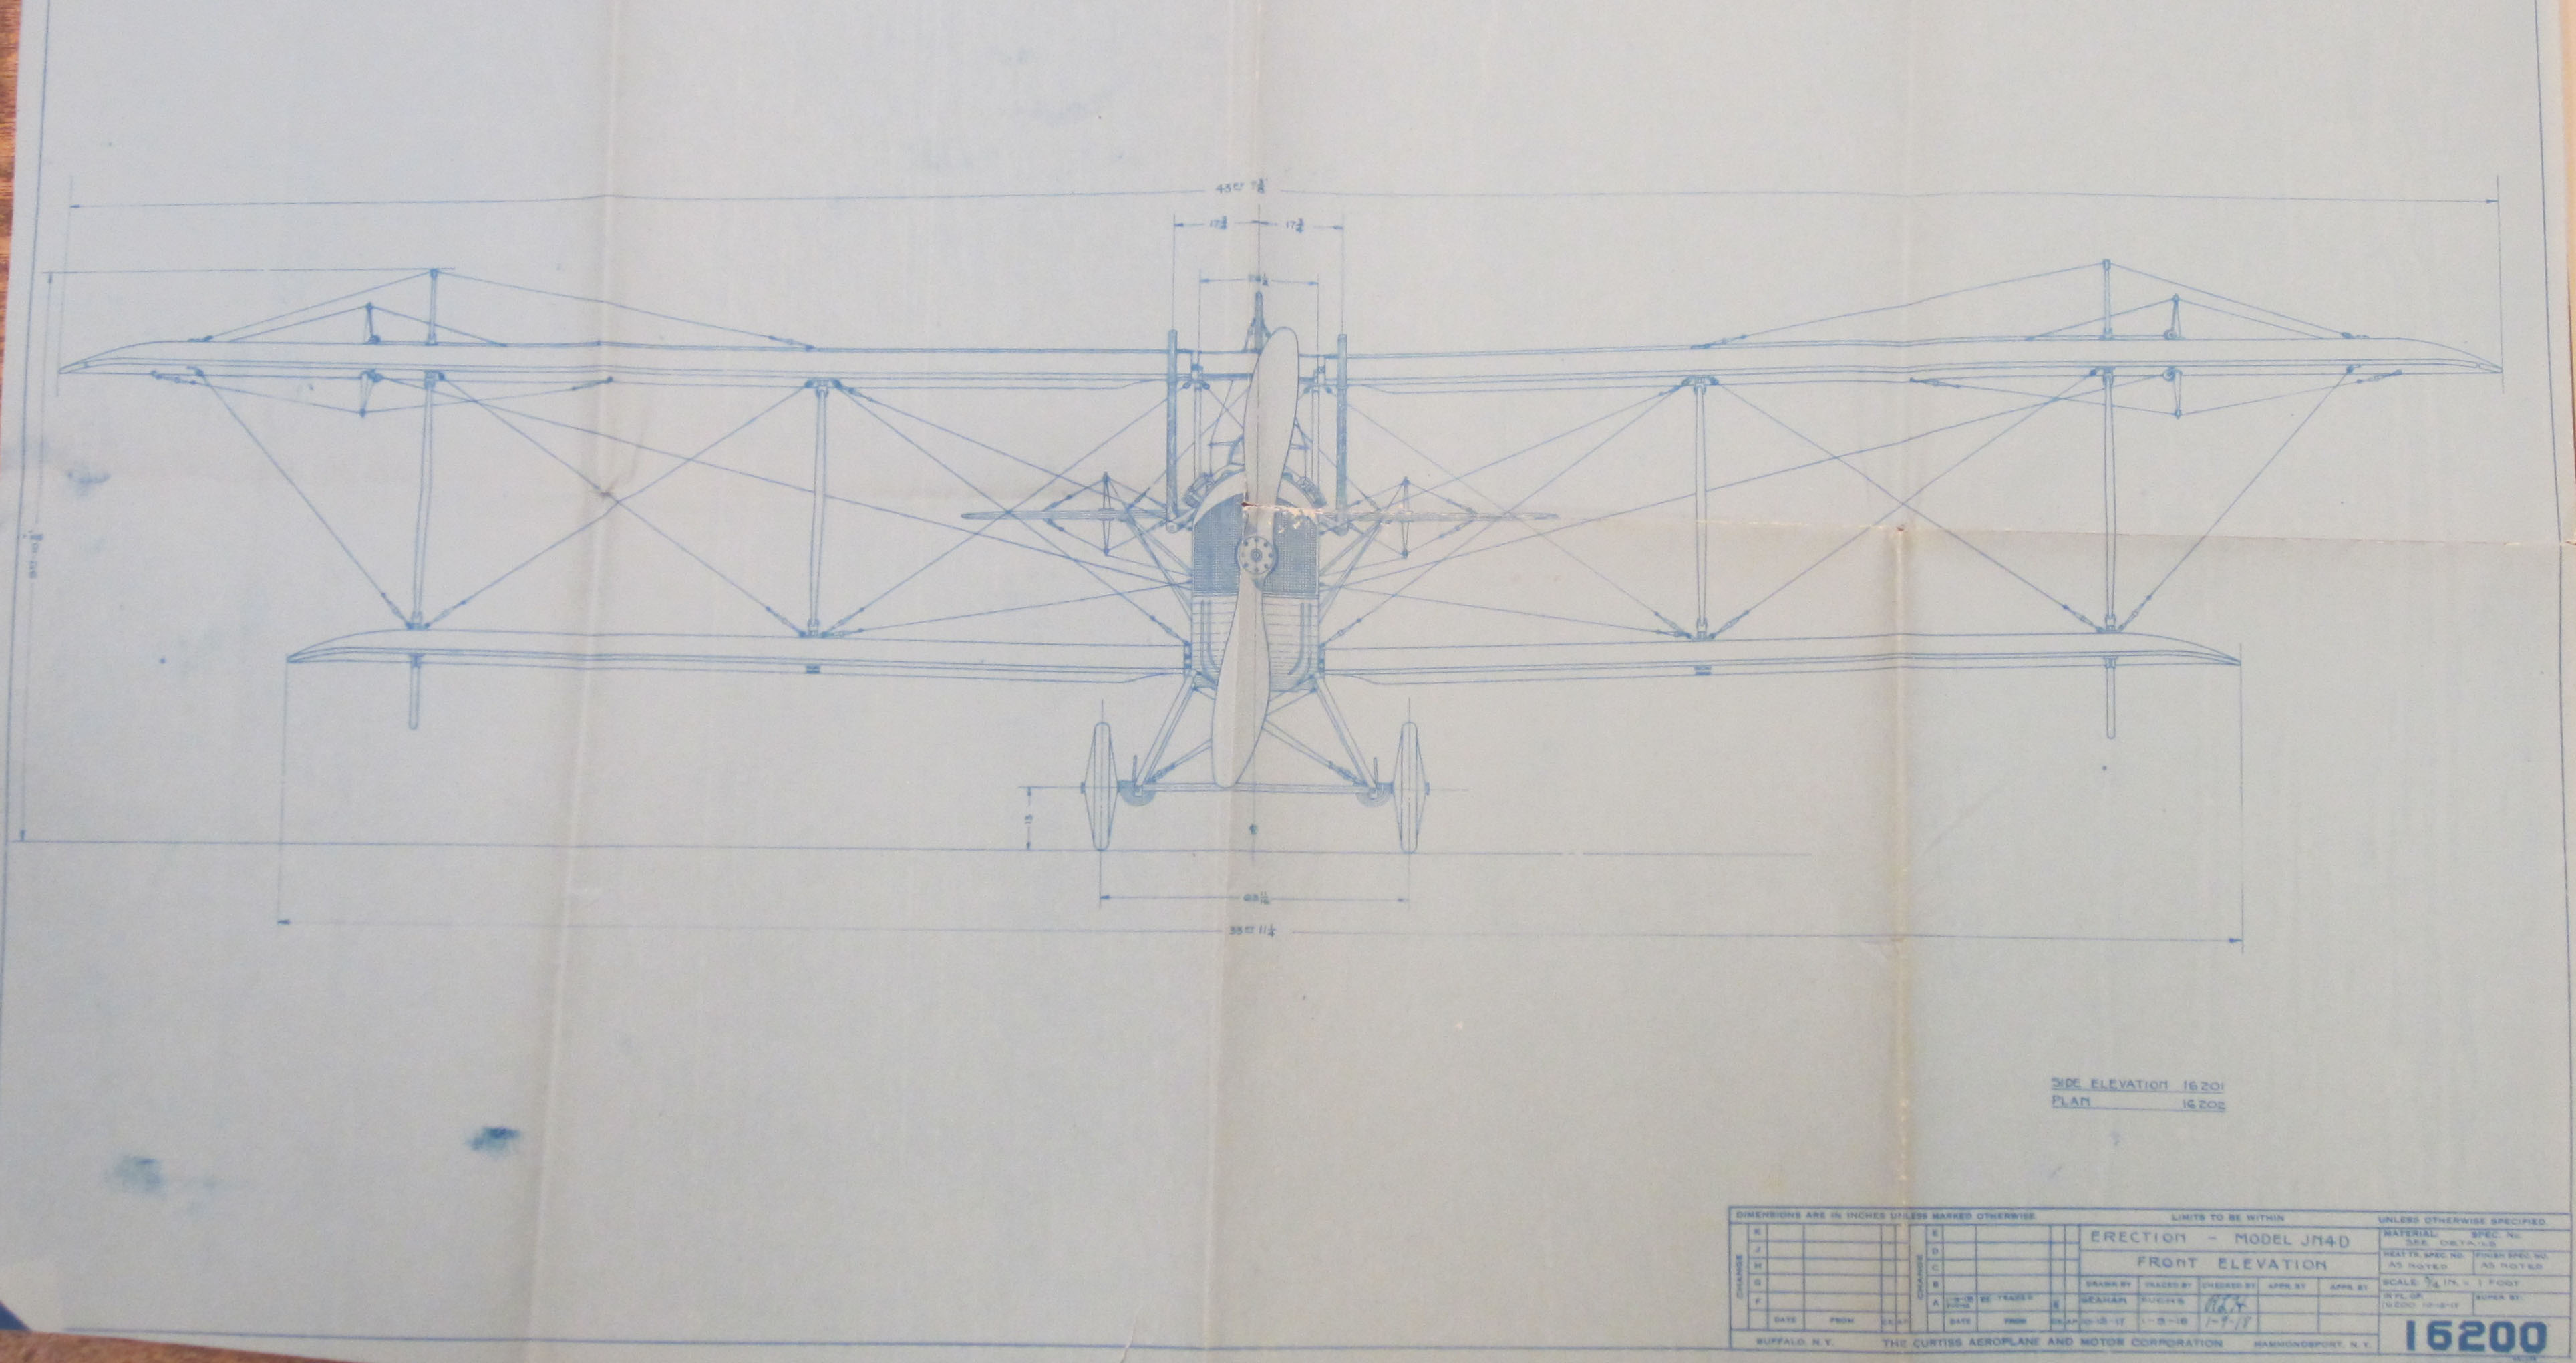 Blueprint of the front elevation for the model J-N-4-D airplane, built by the Curtiss Aeroplane Company of Hammondsport, N.Y., later the Curtiss Aeroplane and Motor Company, 1917-1918. (MSS 10875-bv. Photograph by Petrina Jackson)